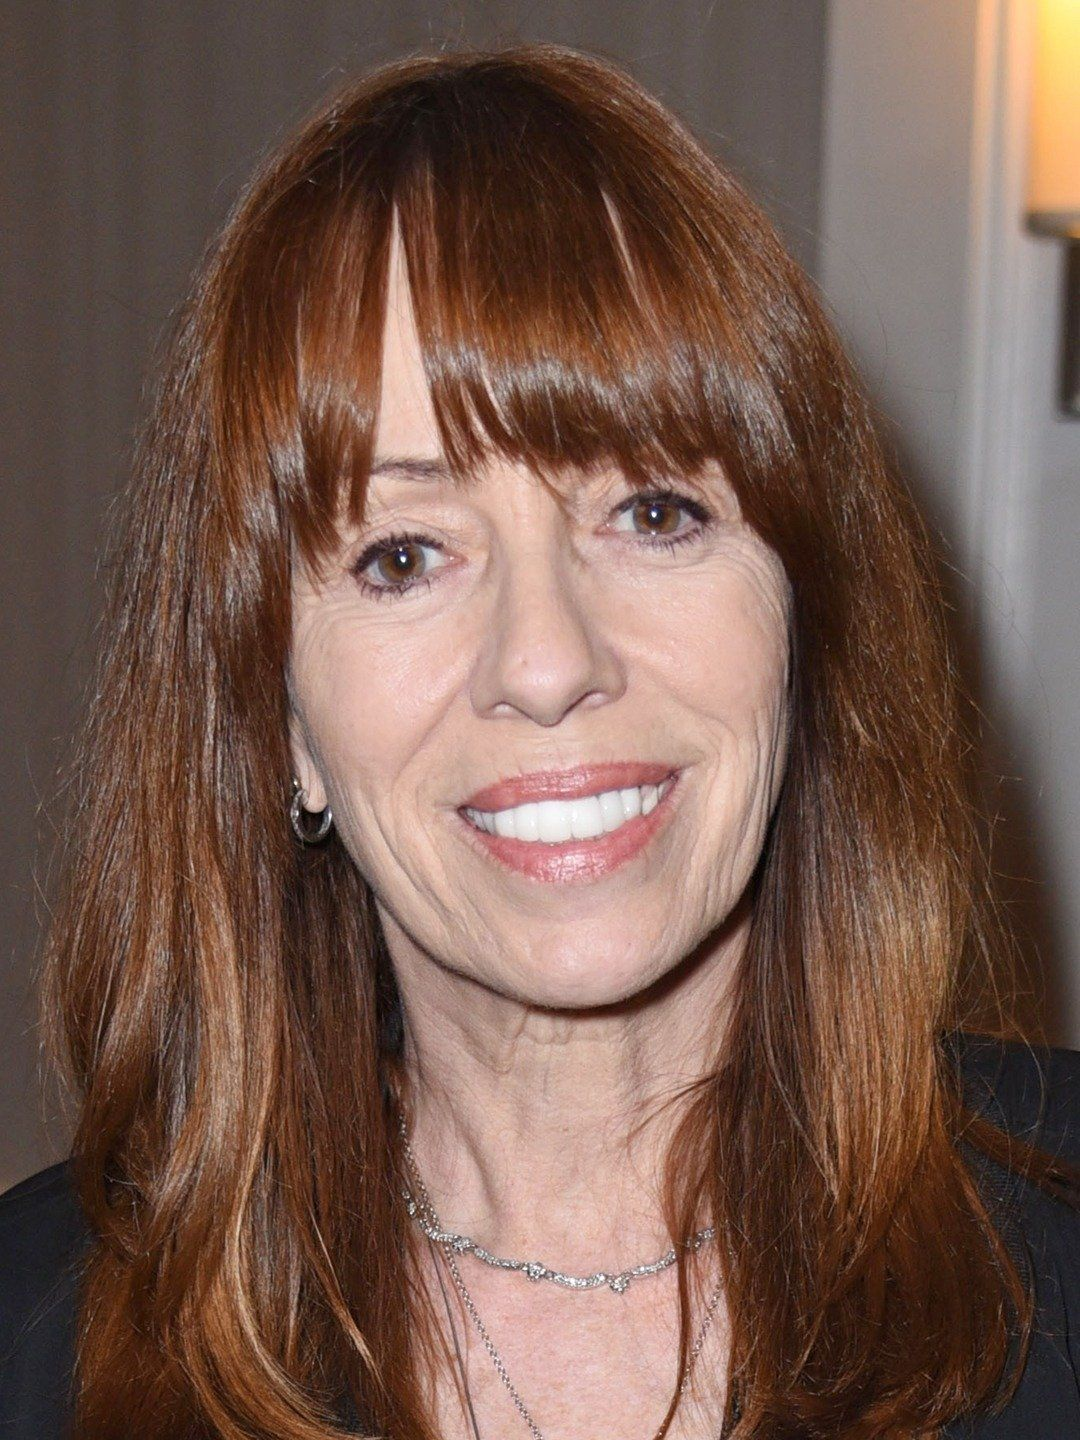 Happy 59th Birthday To Mackenzie Phillips 11 10 2018 American Actress And Singer Best Known For Her Roles In Ame Phillips American Actress Mackenzie